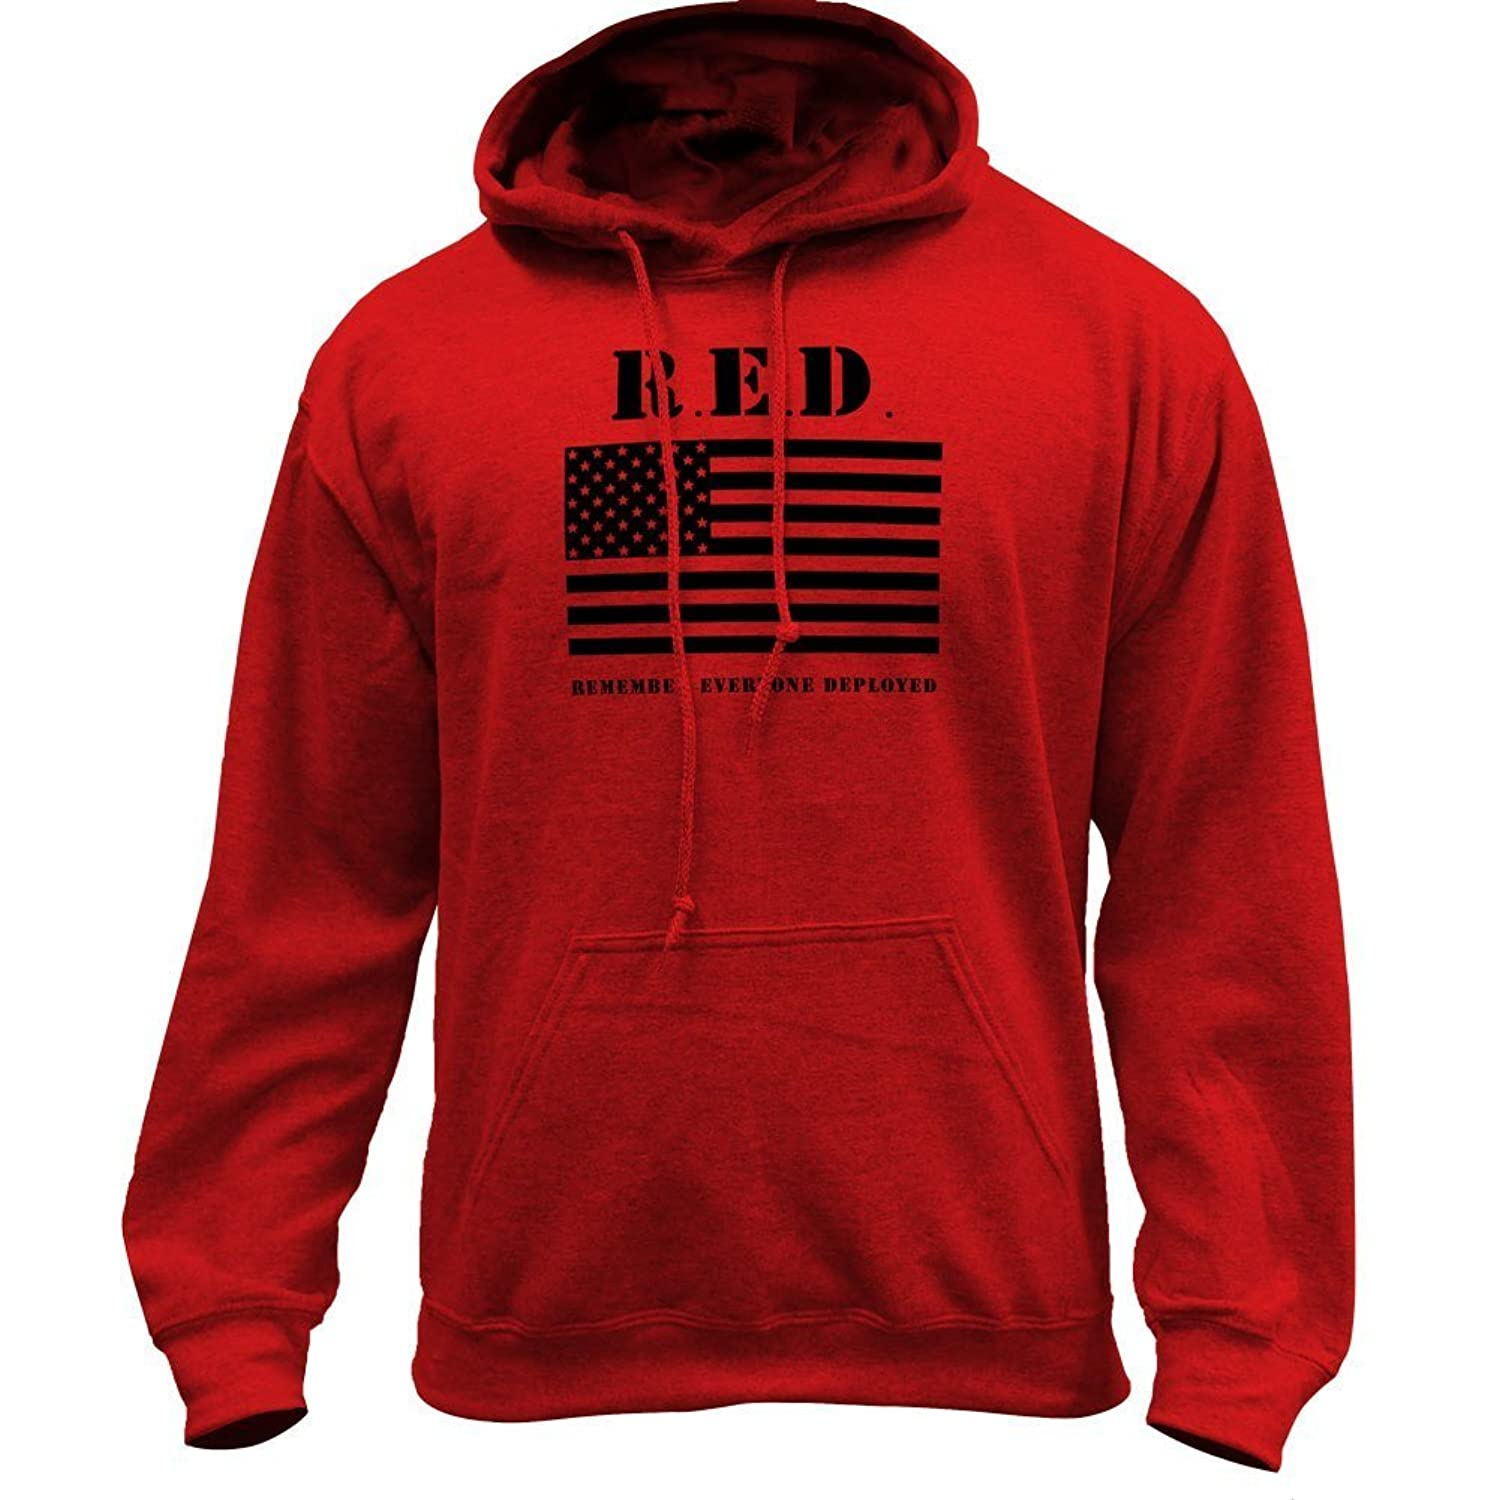 b6c1f148096 cheap Remember Everyone Deployed RED - Flag Military Pullover Hoodie ...